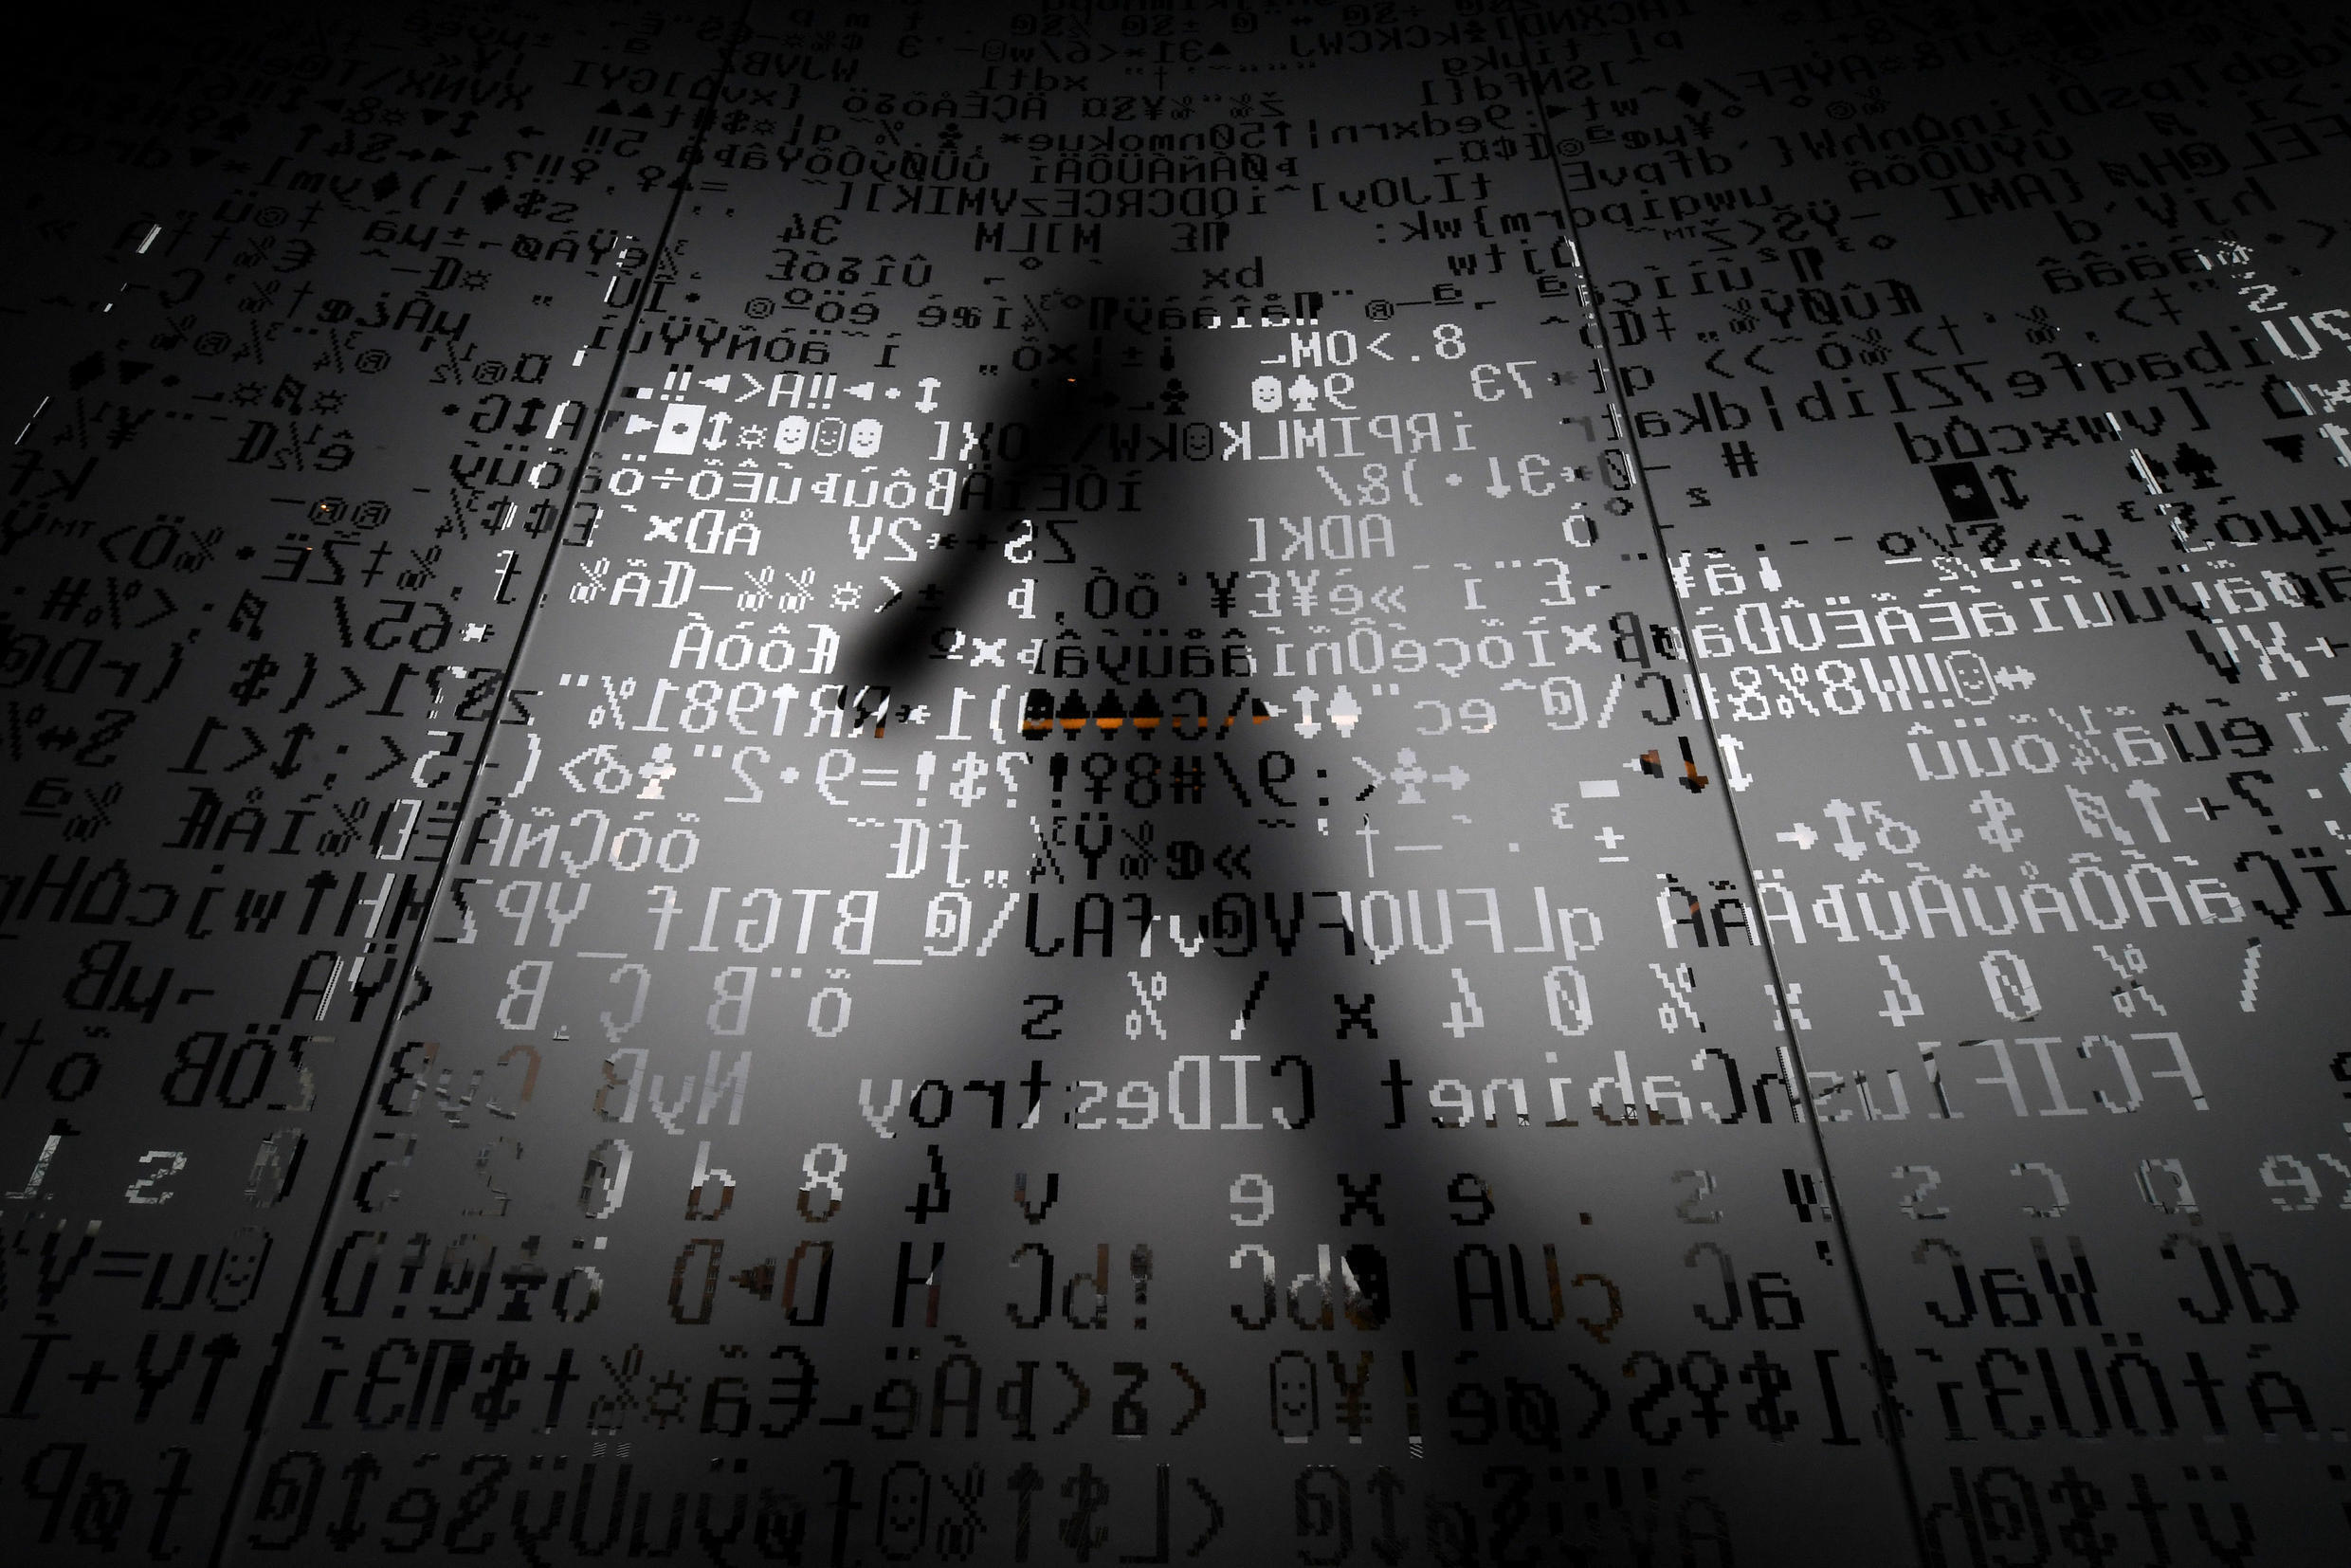 State-sponsored hackers are believed to be behind an attack on the cybersecurity firem FireEye that stole key tools that check for system vulnerabilities